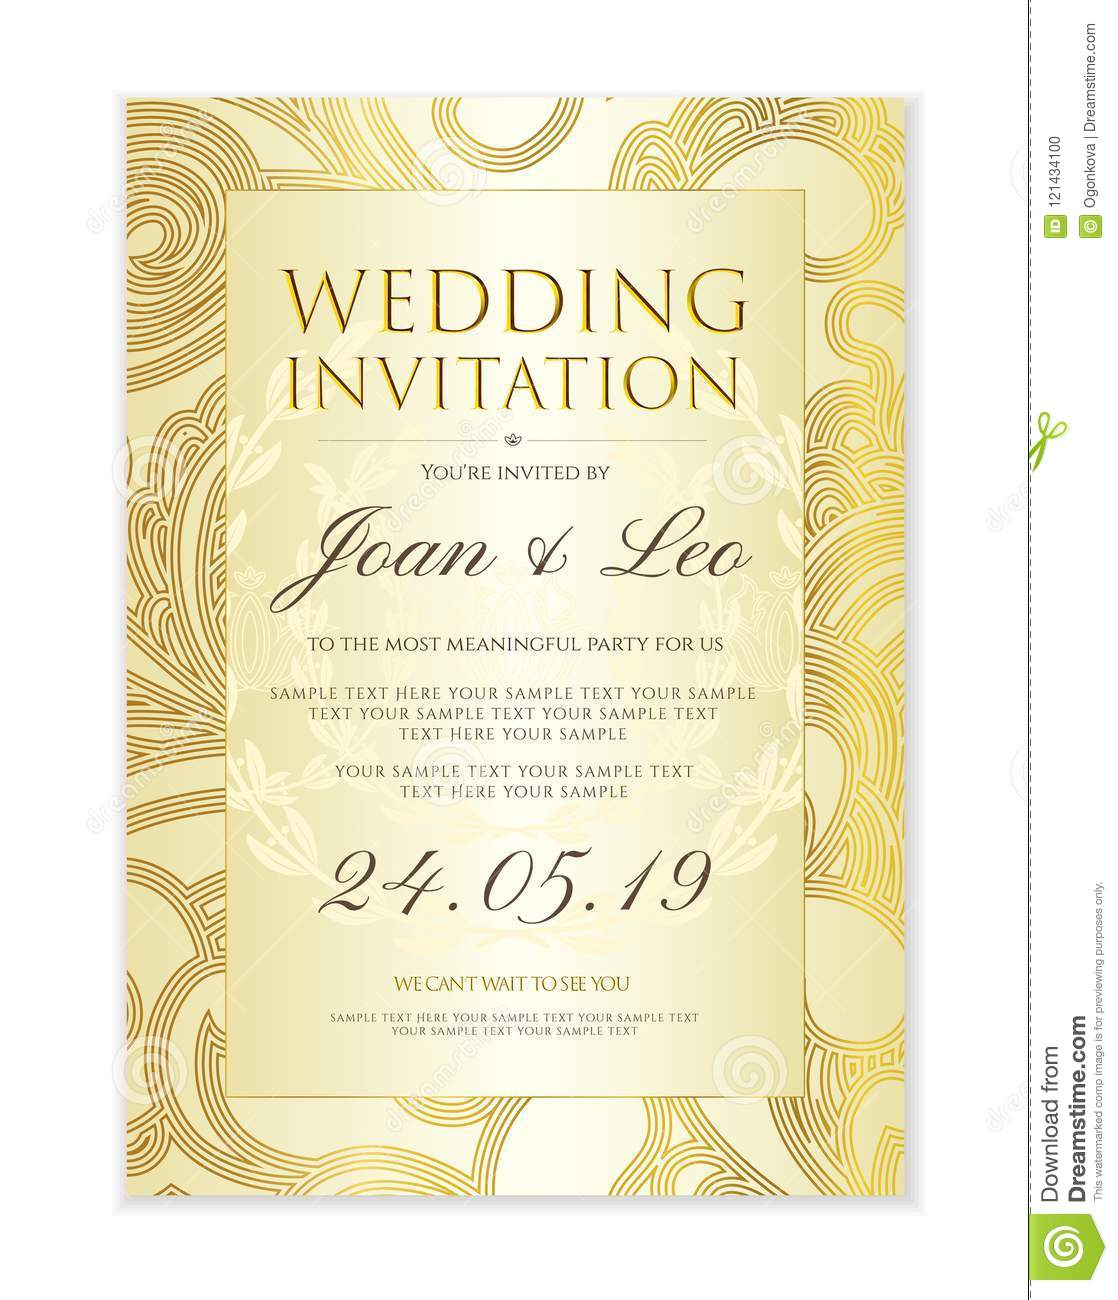 Wedding Invitation Design Template Save The Date Card. Classic White ...